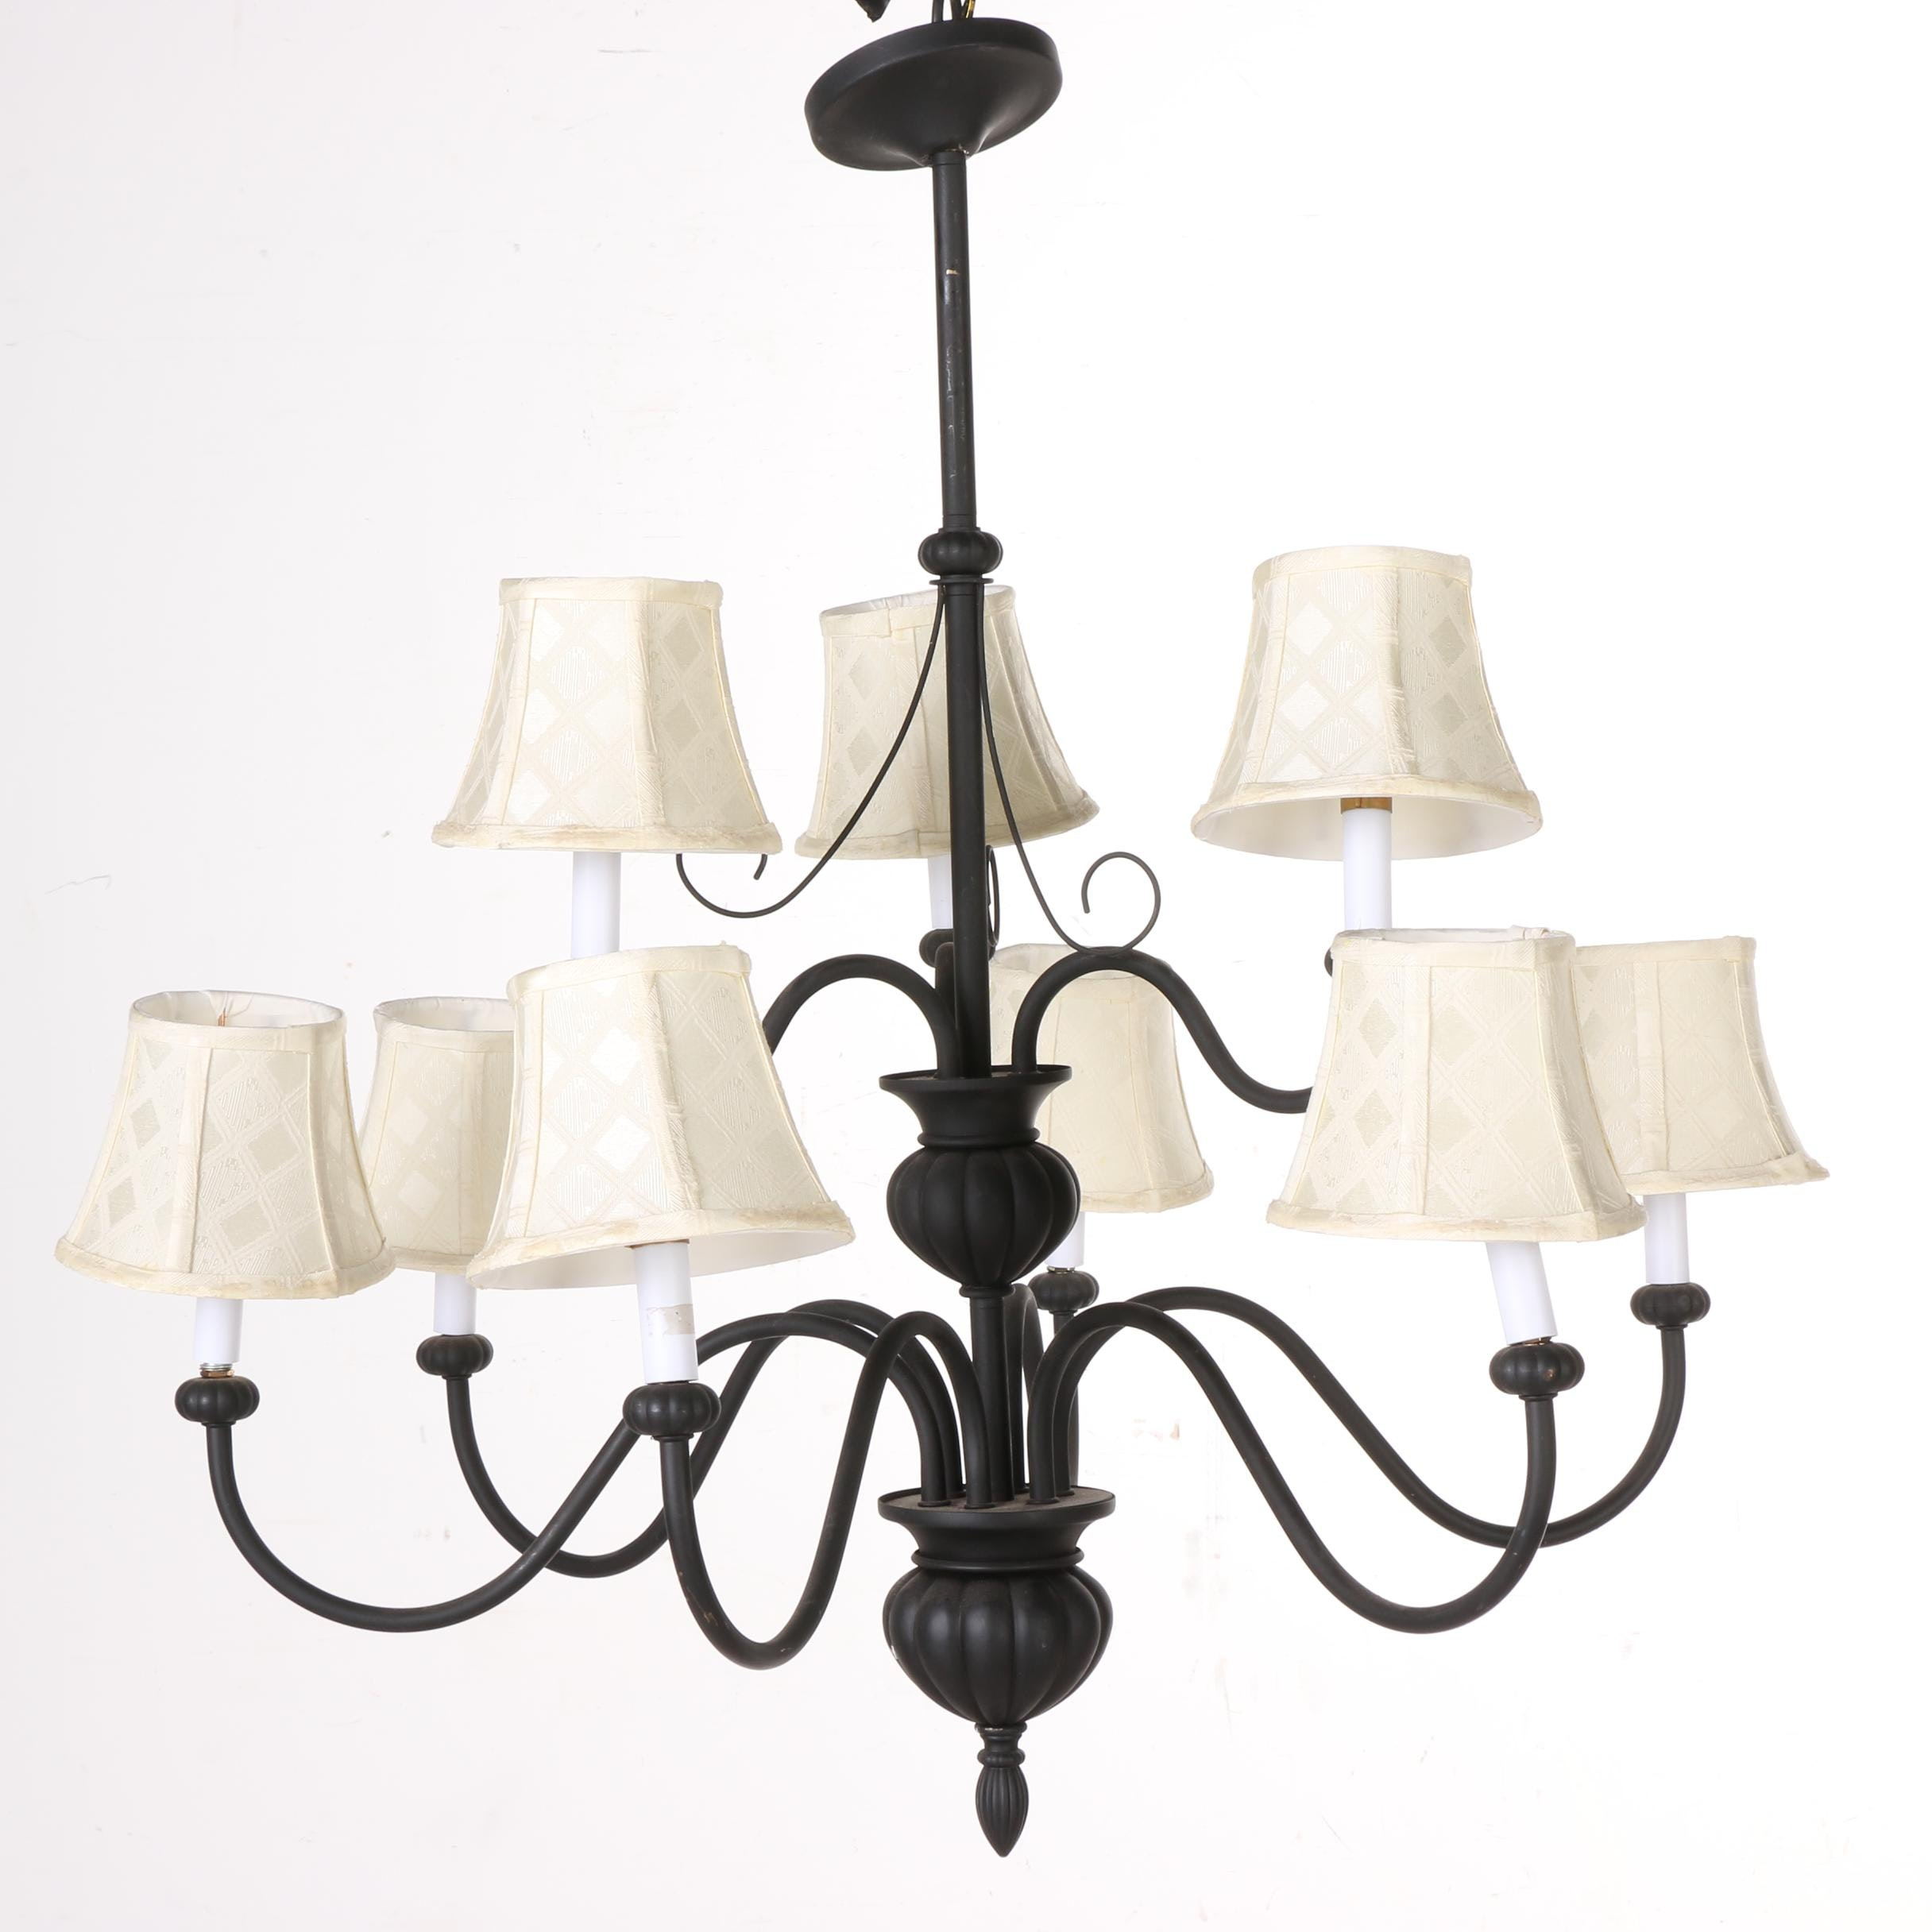 Pottery Barn Black Metal Chandelier With Shades